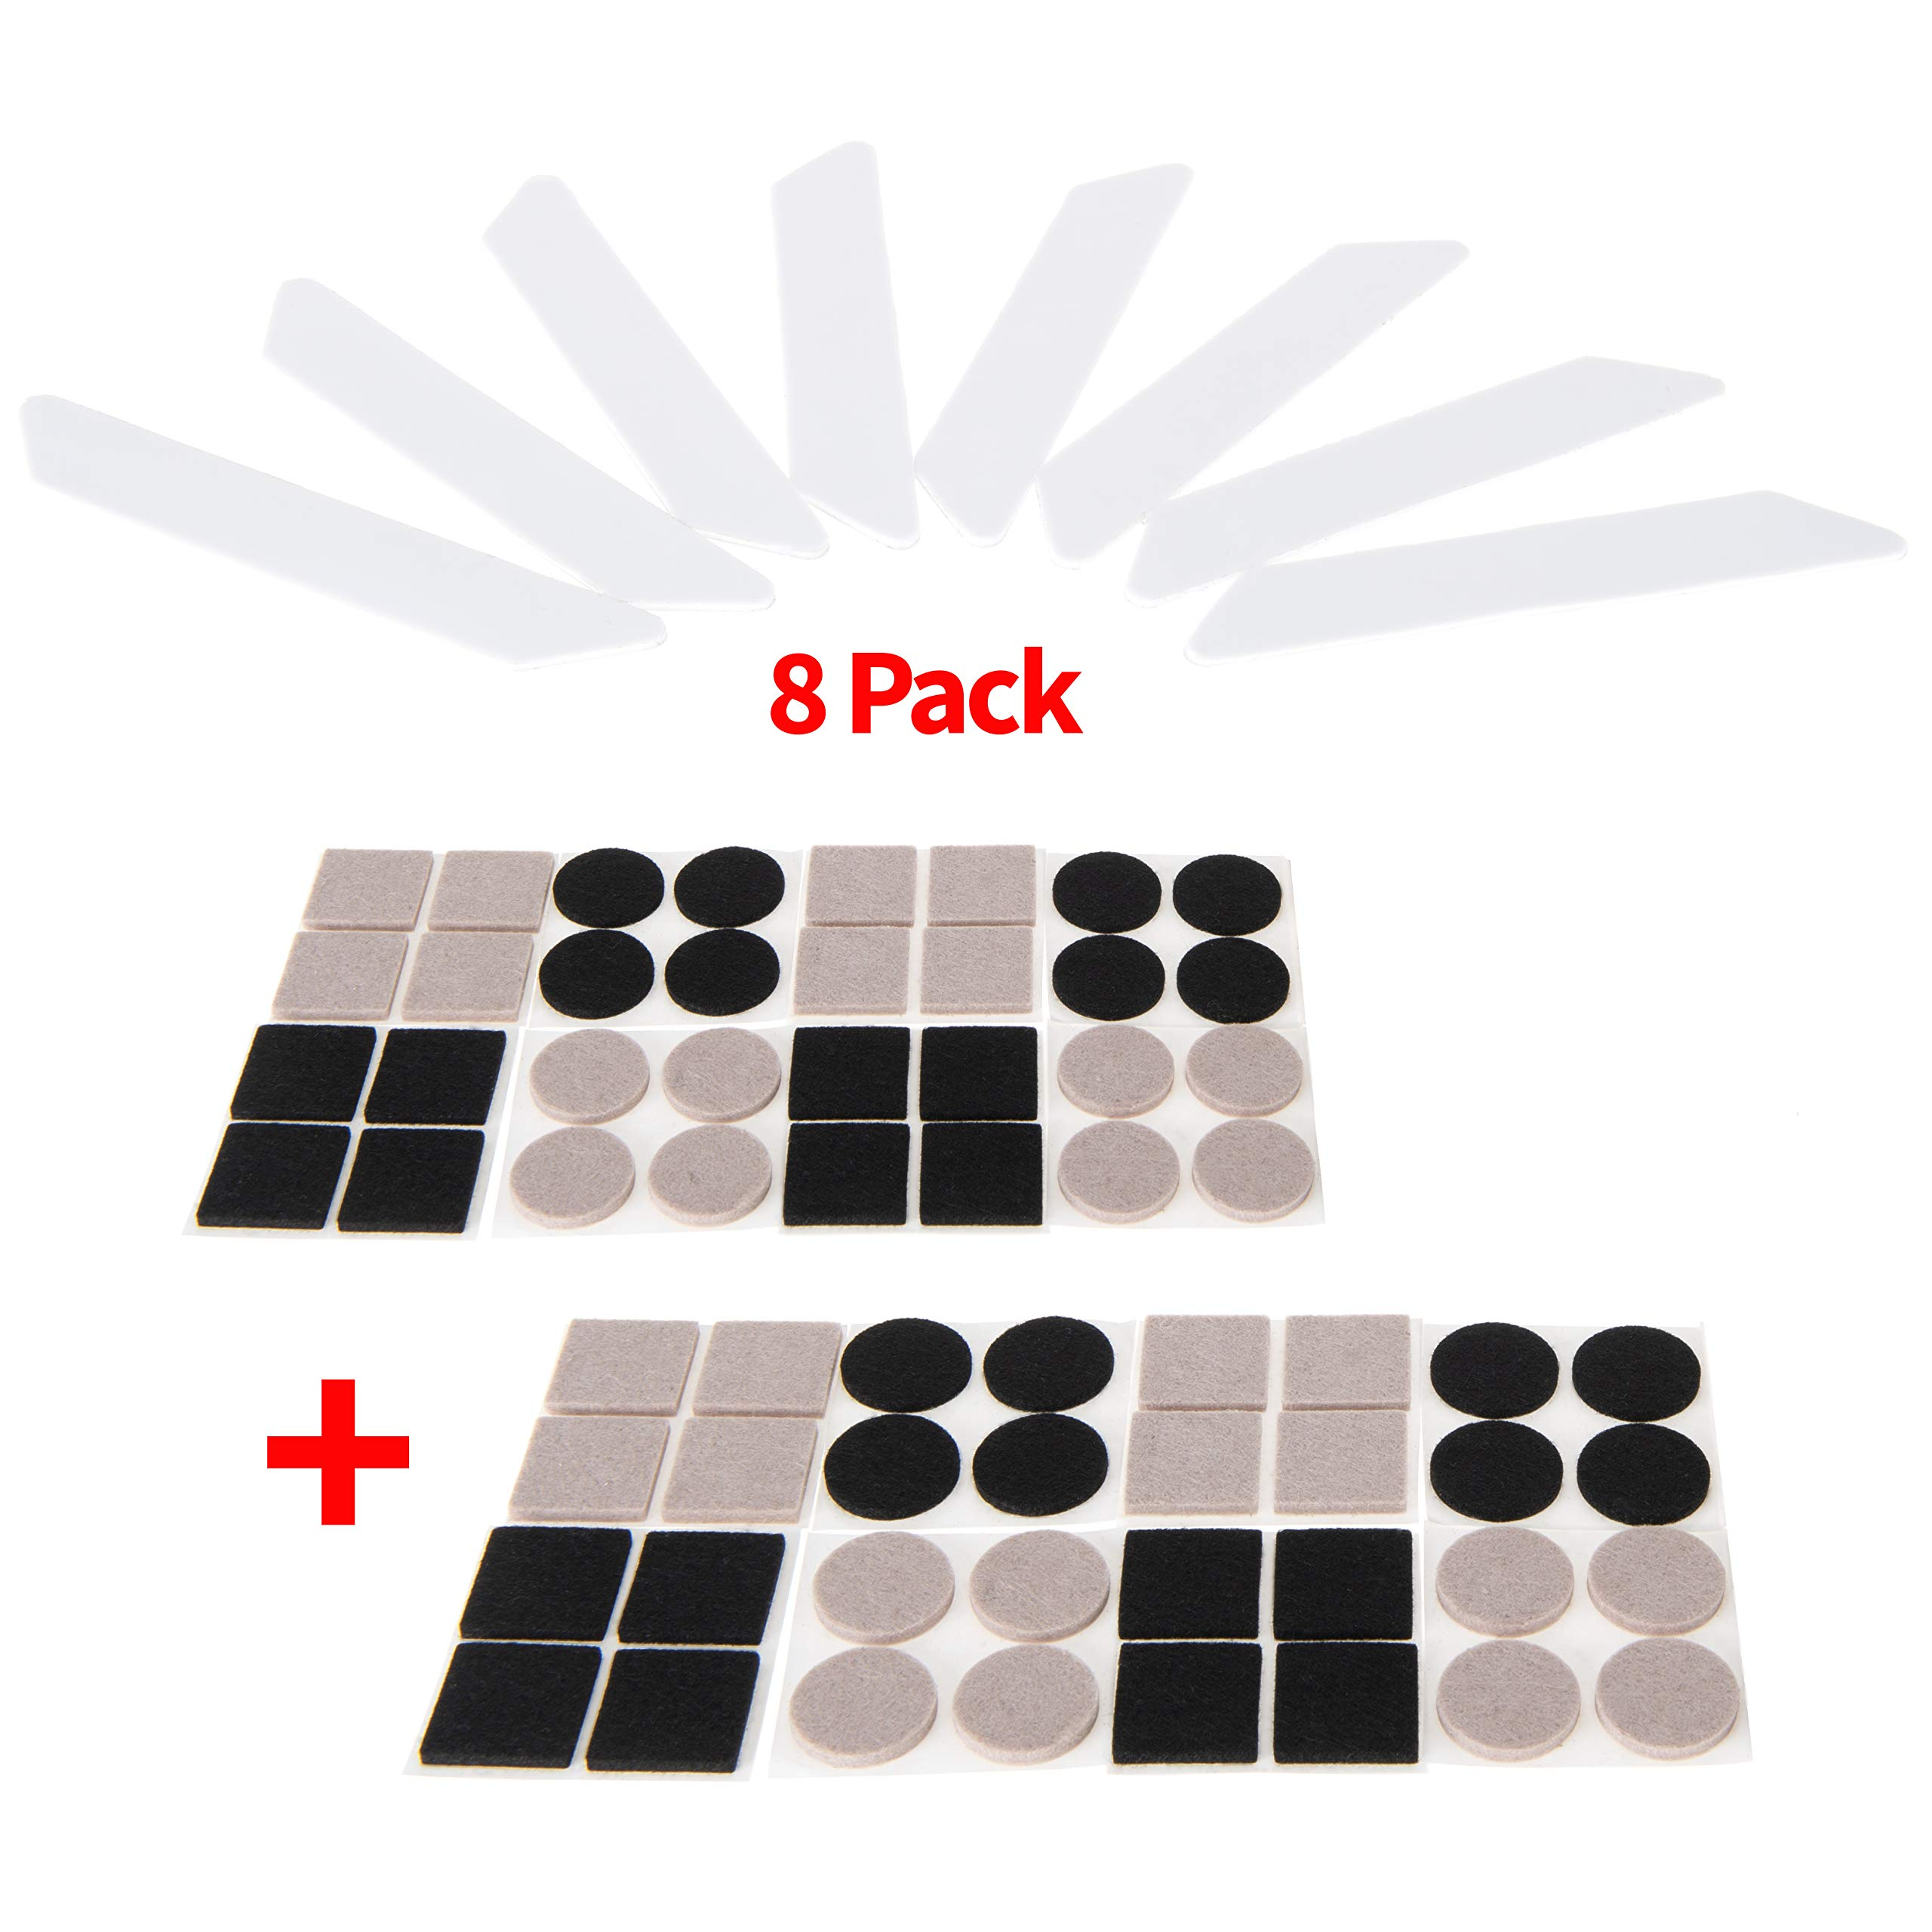 DKST Kitchen Rug Grippers Pad Set - 8 Pcs Non Slip Anti Curl Pack BONUS Felt Furniture Pads Set Protectors for Hardwood Floors. Use Double Sided Tape on Area Rugs & Sliders on Chair and Table Legs